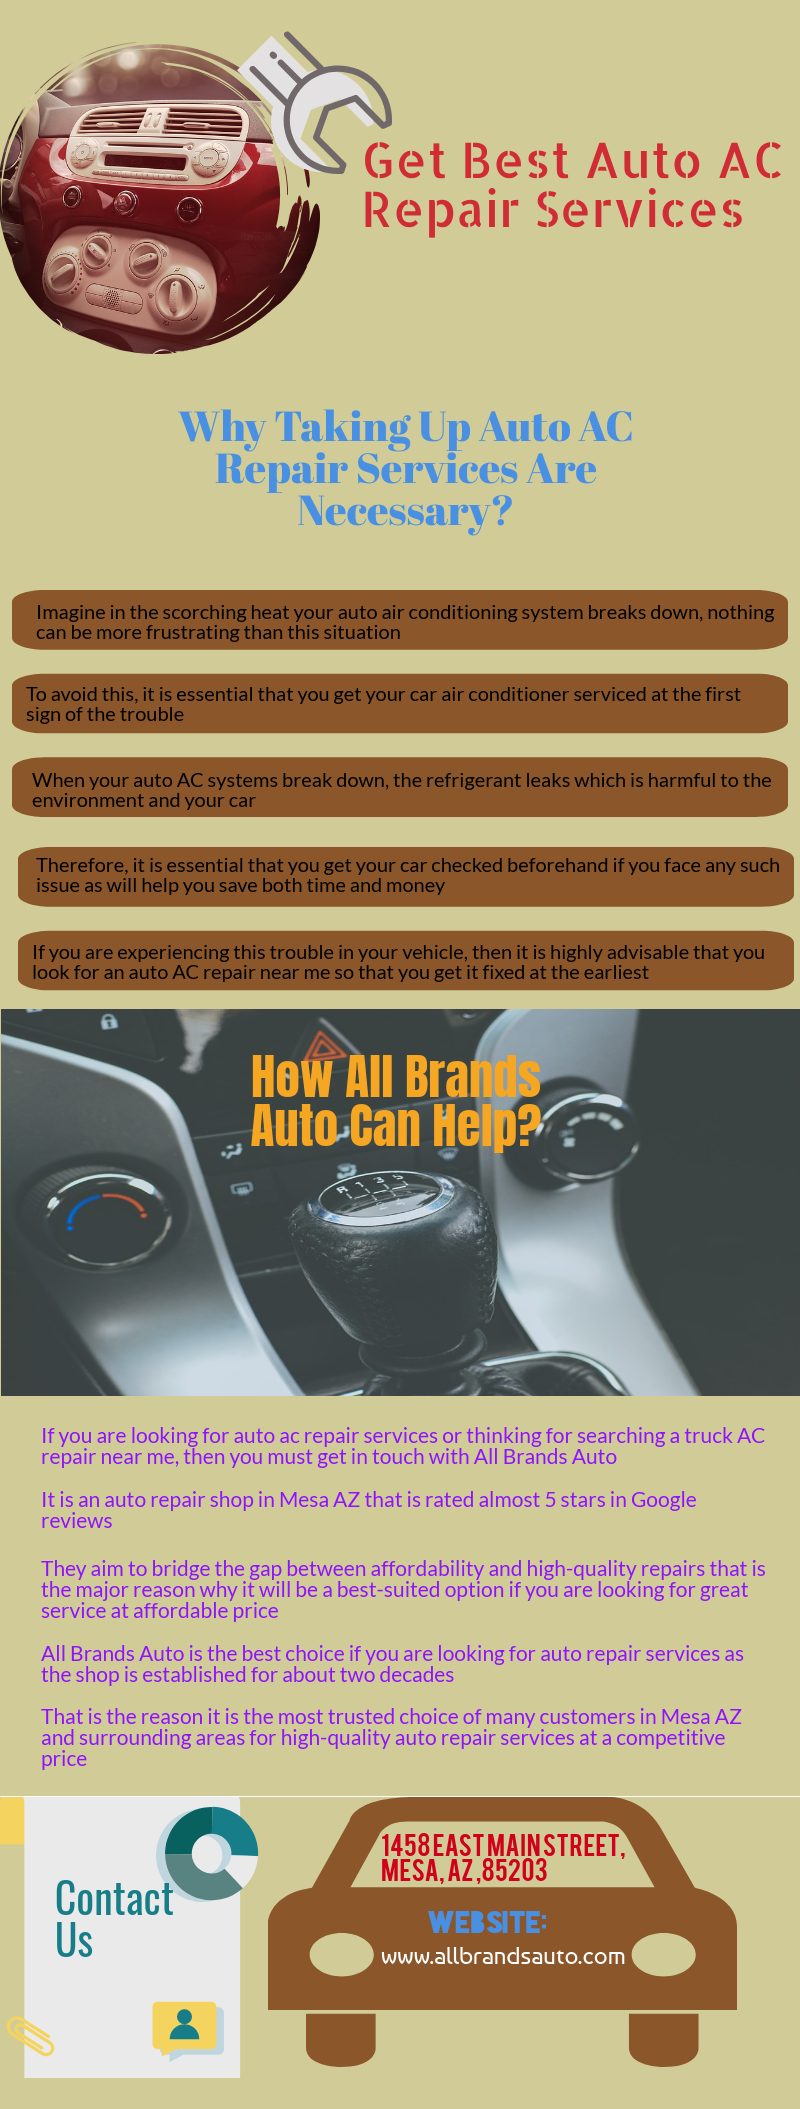 If you are looking for auto ac repair services or thinking